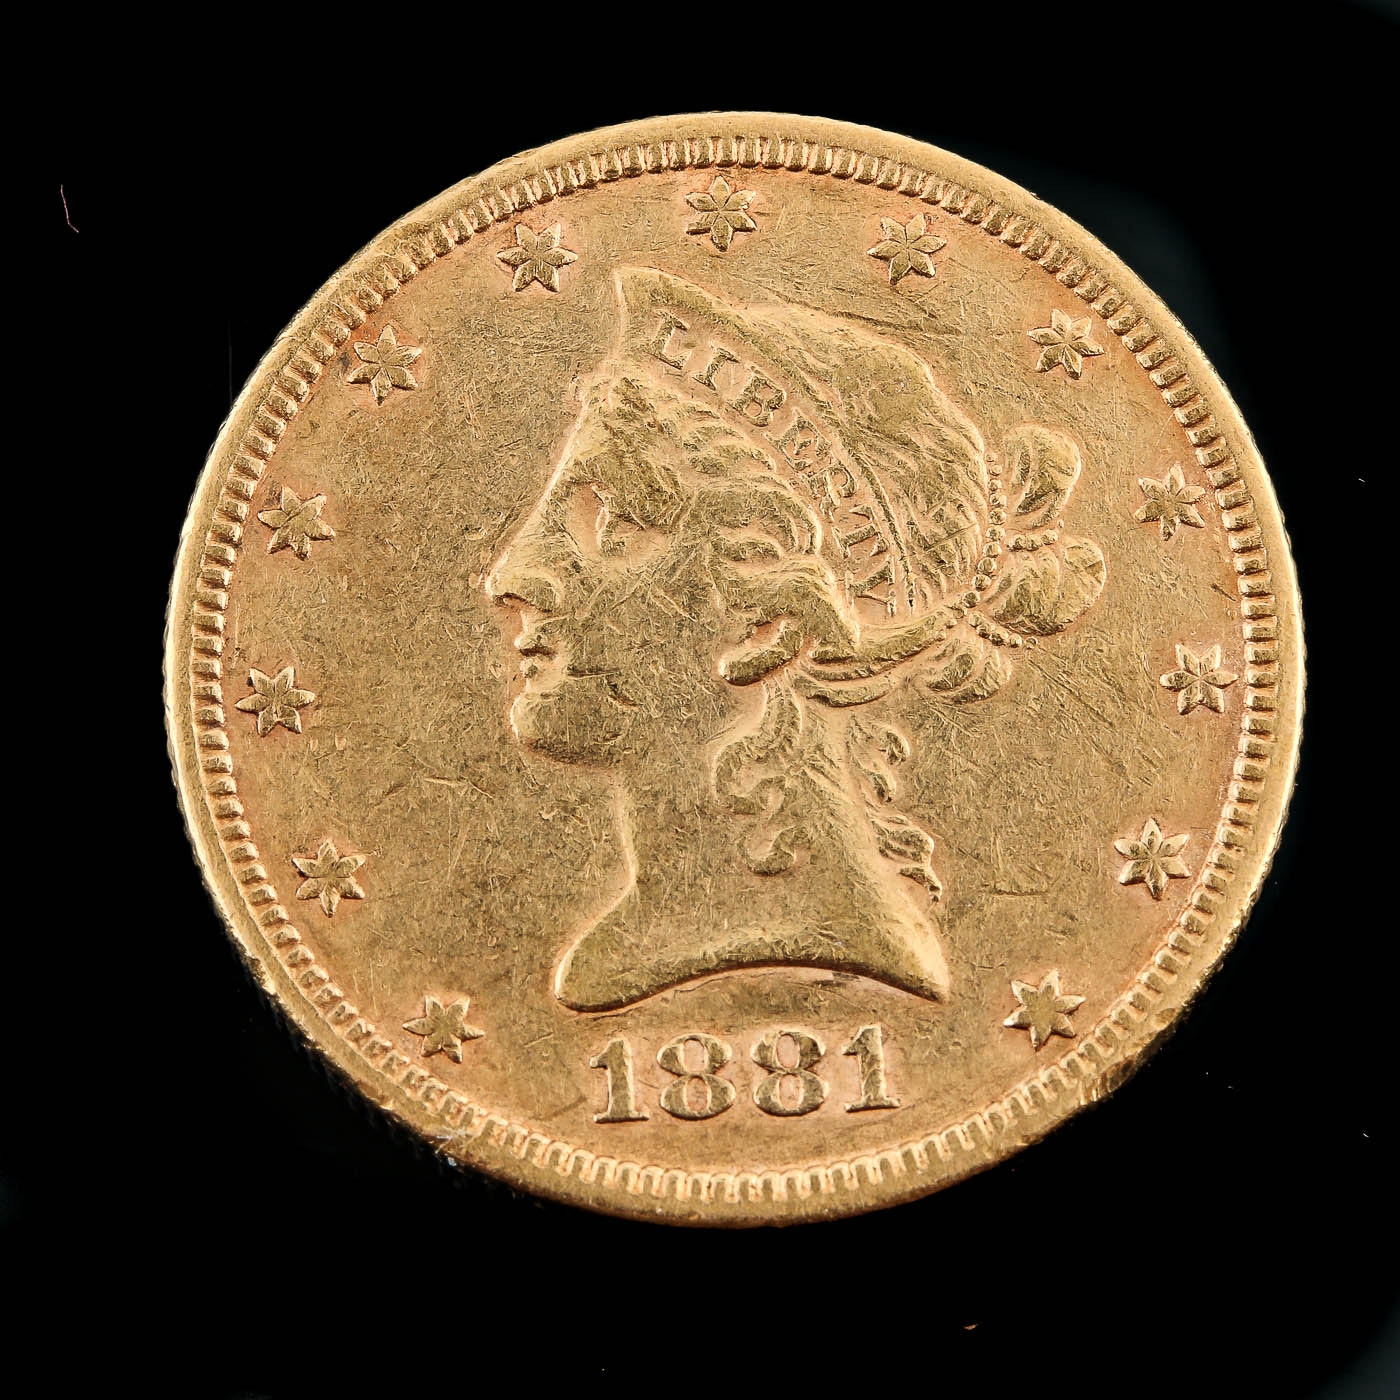 1881 Liberty Head $10 Eagle Gold Coin